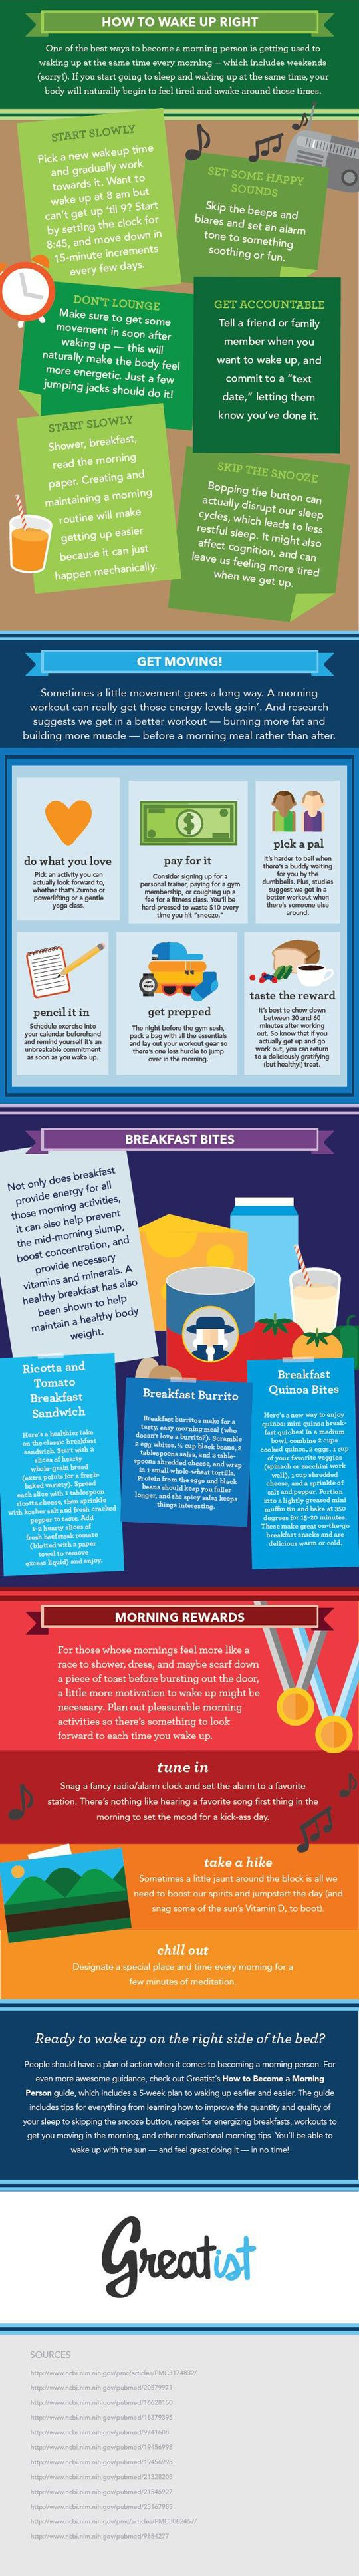 How to wake up right. - Some good ideas there for those of you who have trouble moving in the morning!